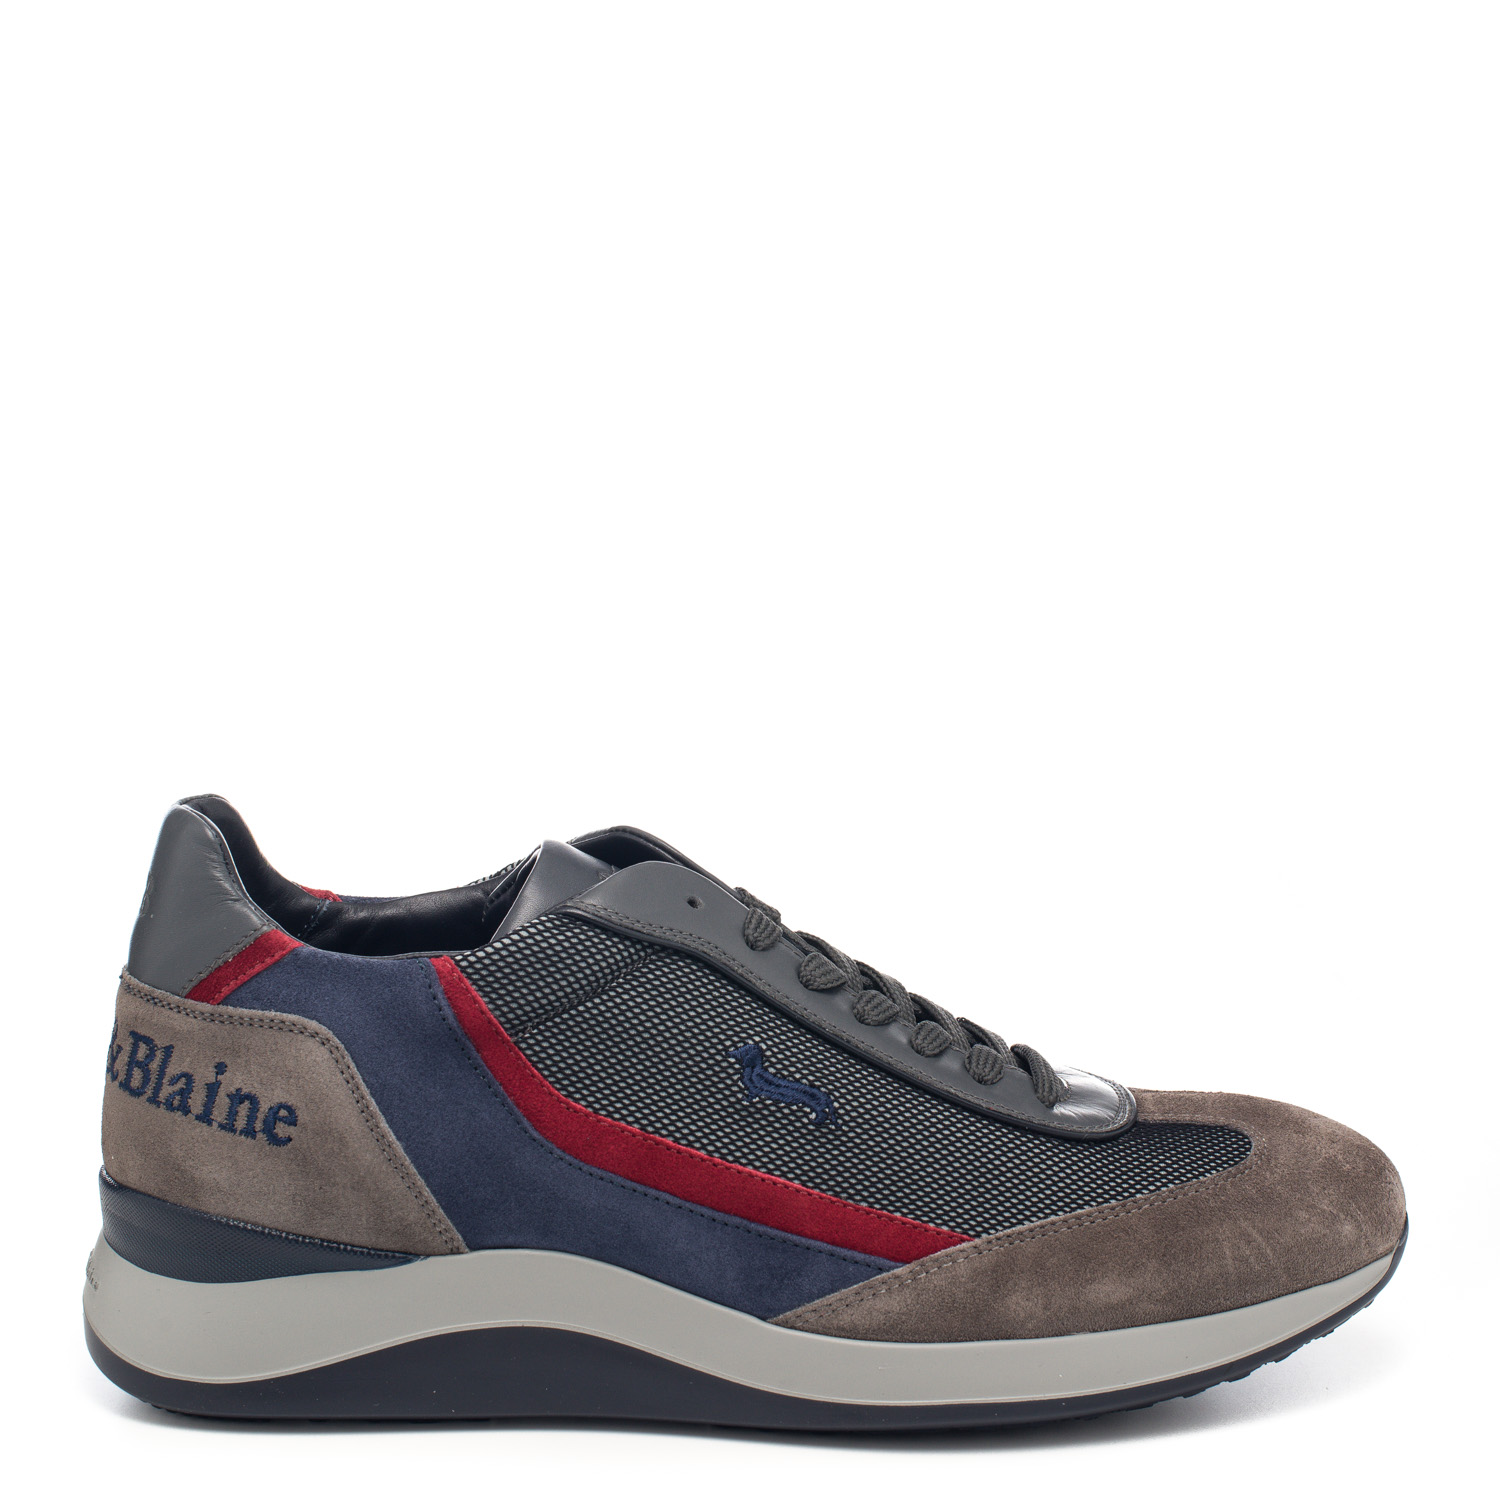 Sneakers Uomo harmont   blaine in offerta 50% e64ab9cd8a9